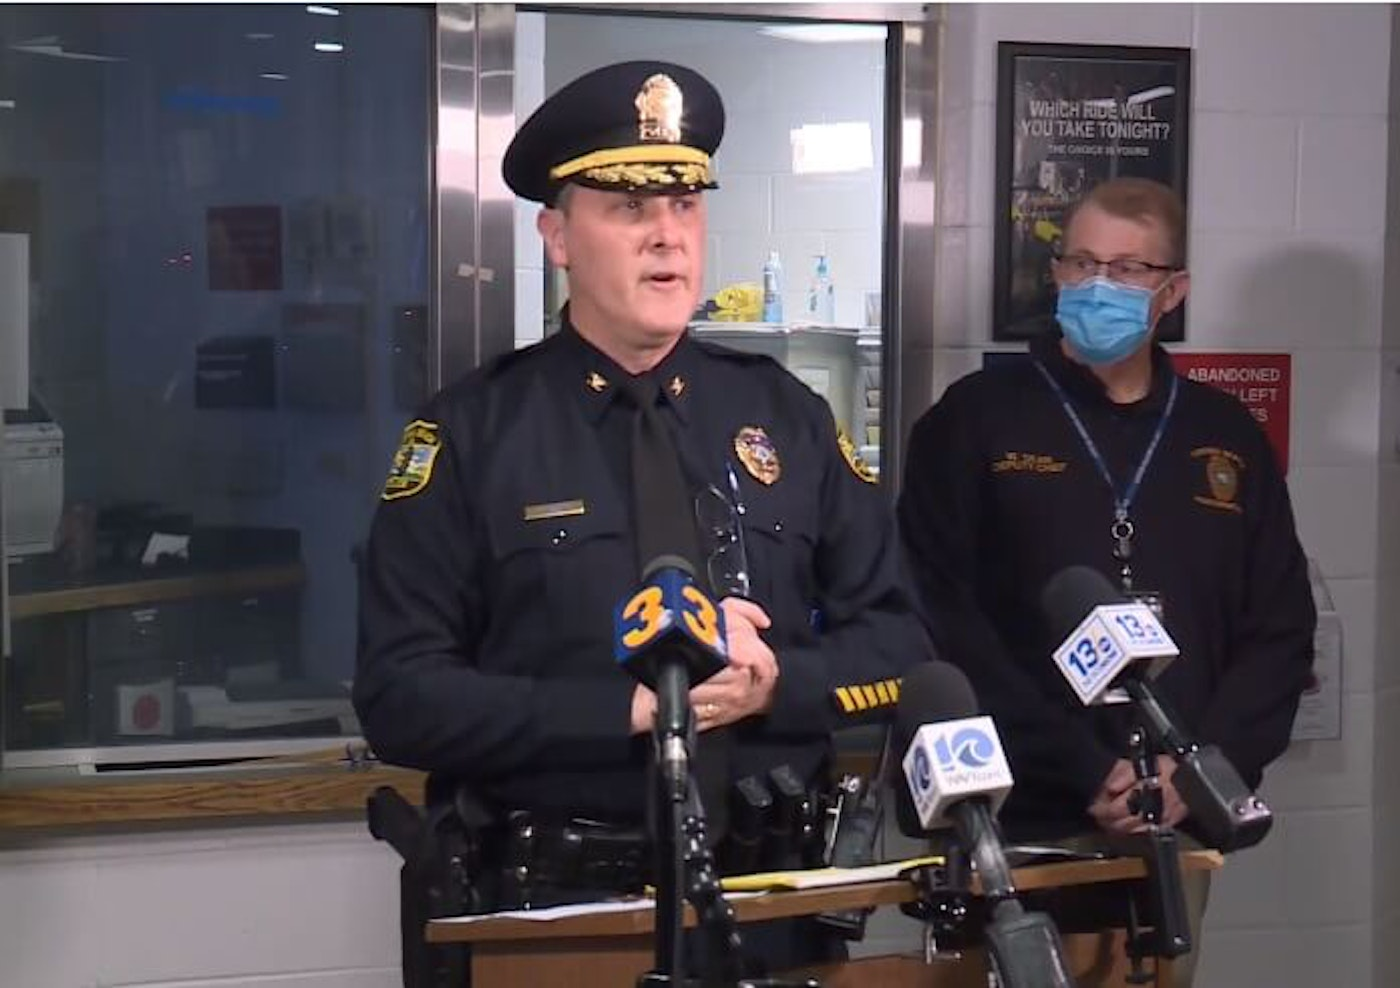 On Saturday night, Virginia Beach Police Chief Paul Neudigate (left) updated the press on the status of the three cases from Friday. Dogwood photo by Brian Carlton.